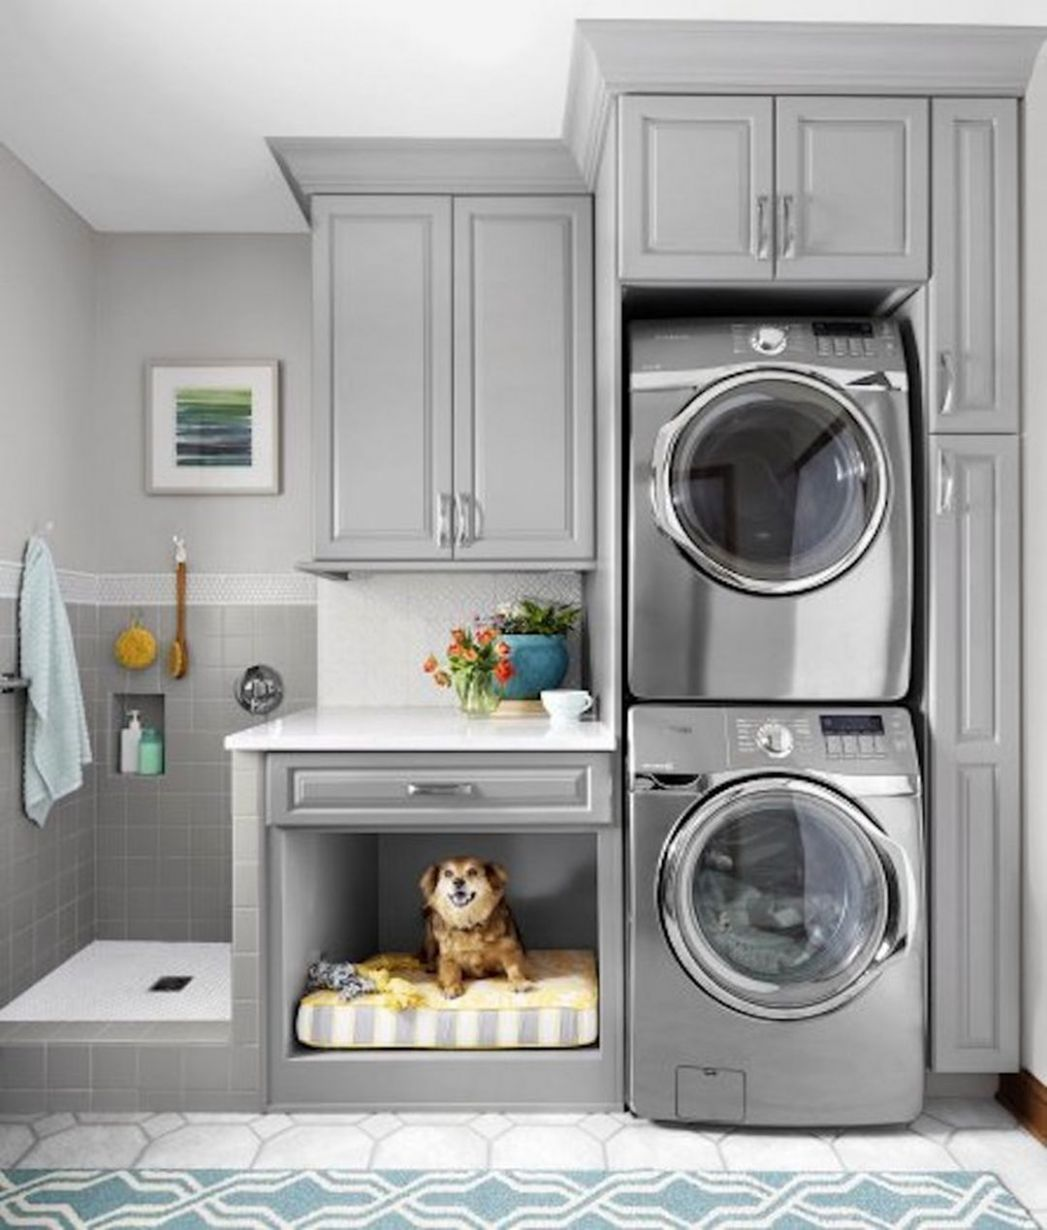 10 Best Minimalist Laundry Room Ideas to Look More Neat And ..